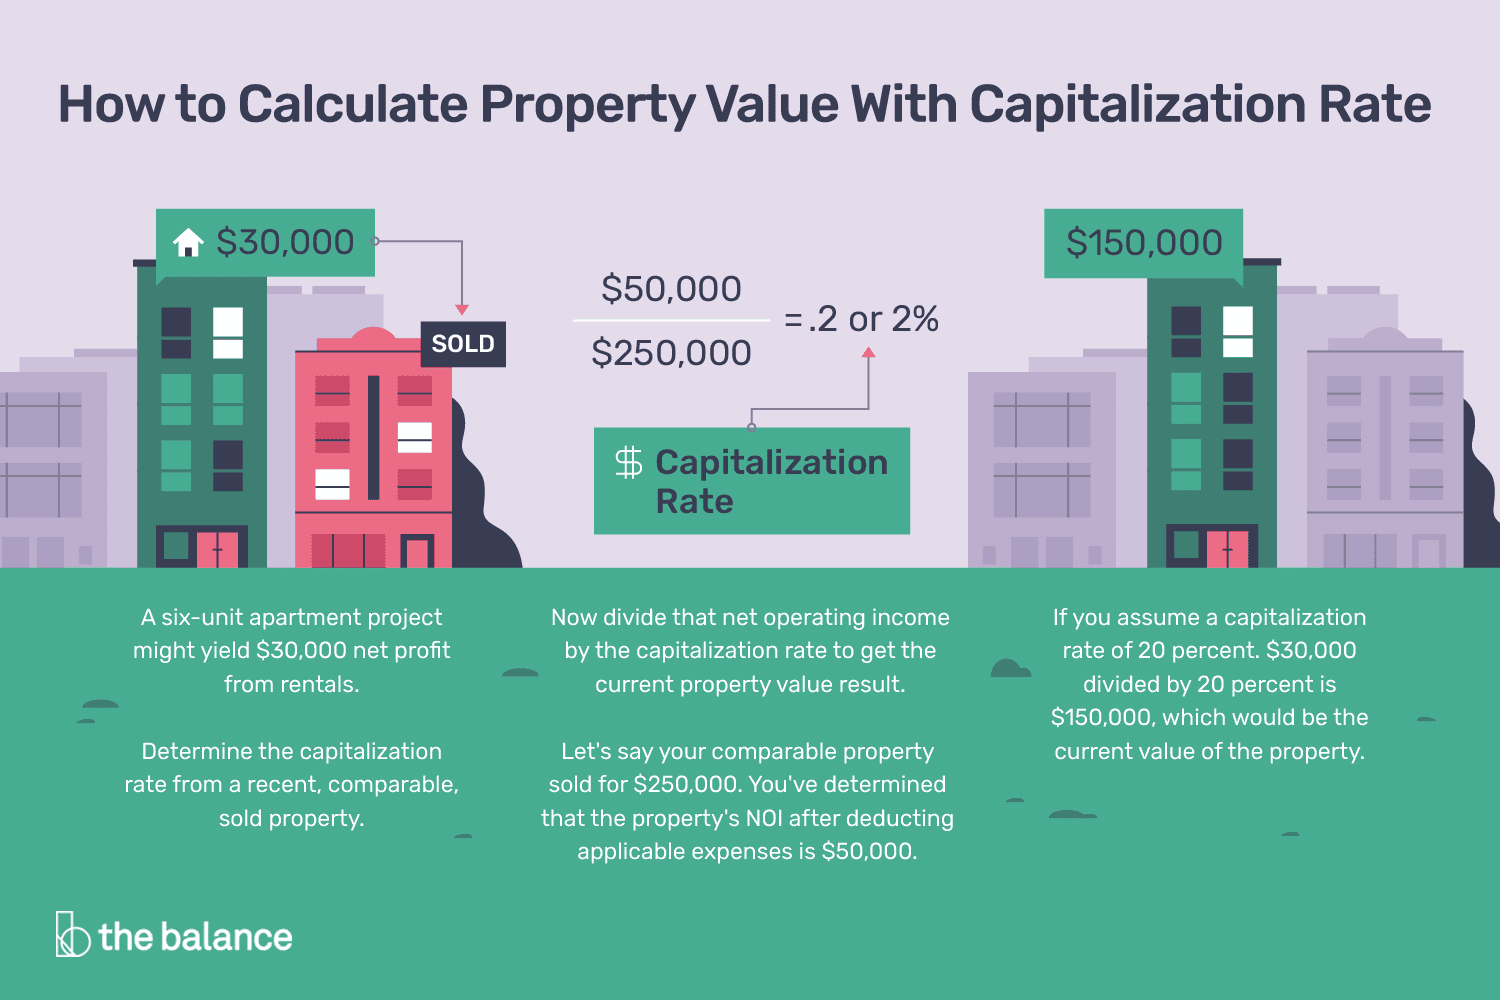 How To Calculate Property Value With Capitalization Rate